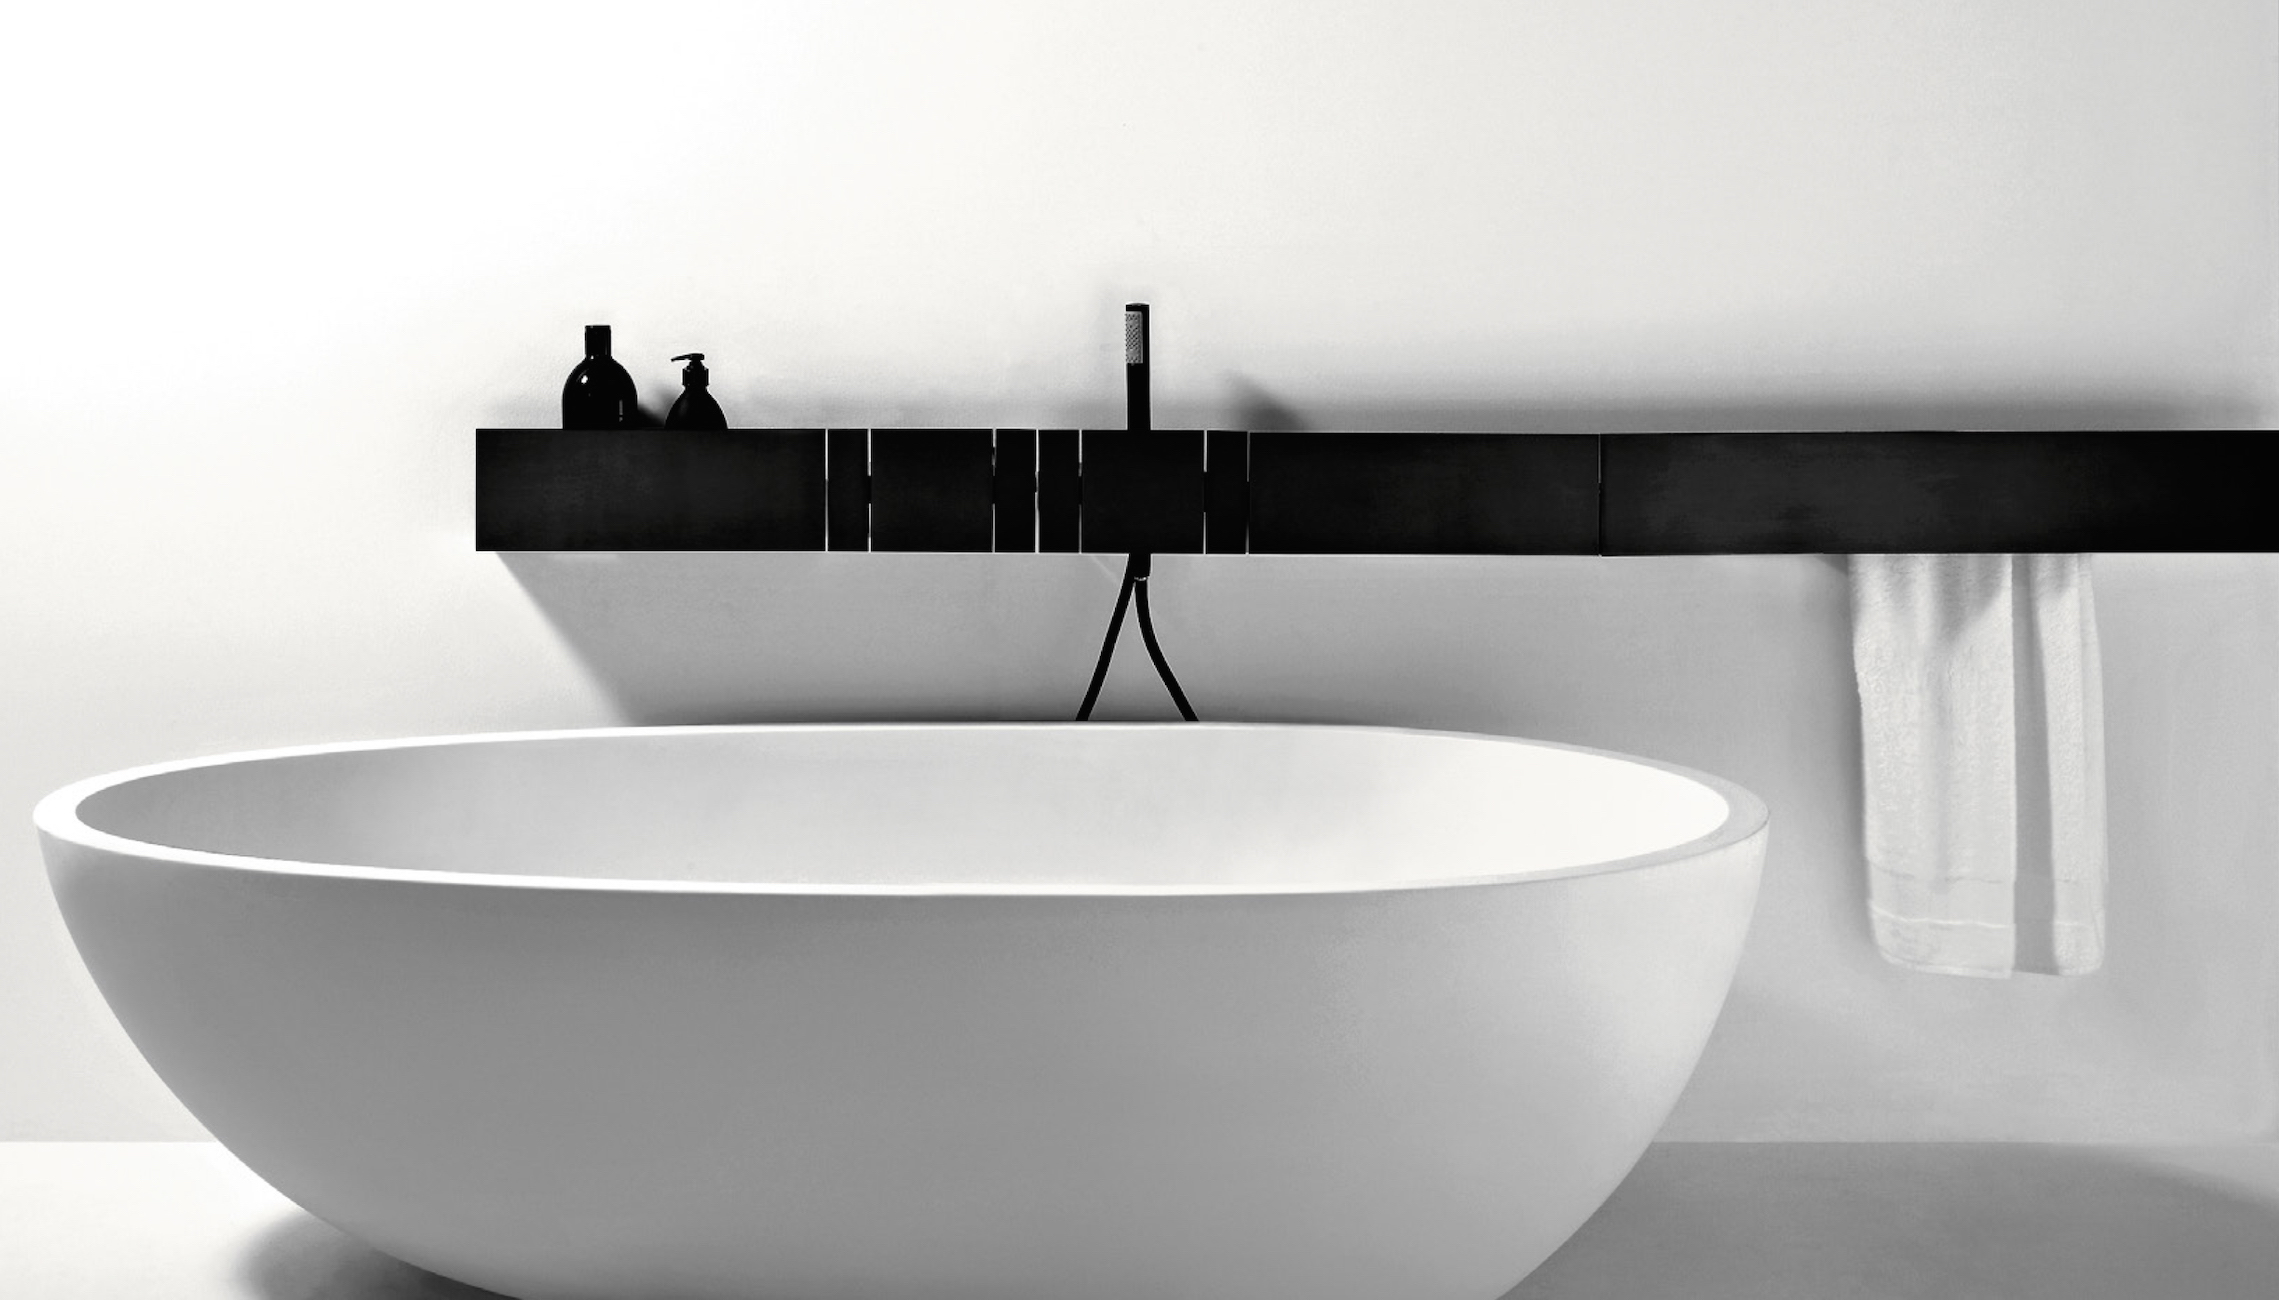 wooden bathtub alpi holzbadewanne bathtubs laguna alegna unique freestanding products black en striking weightless pearl